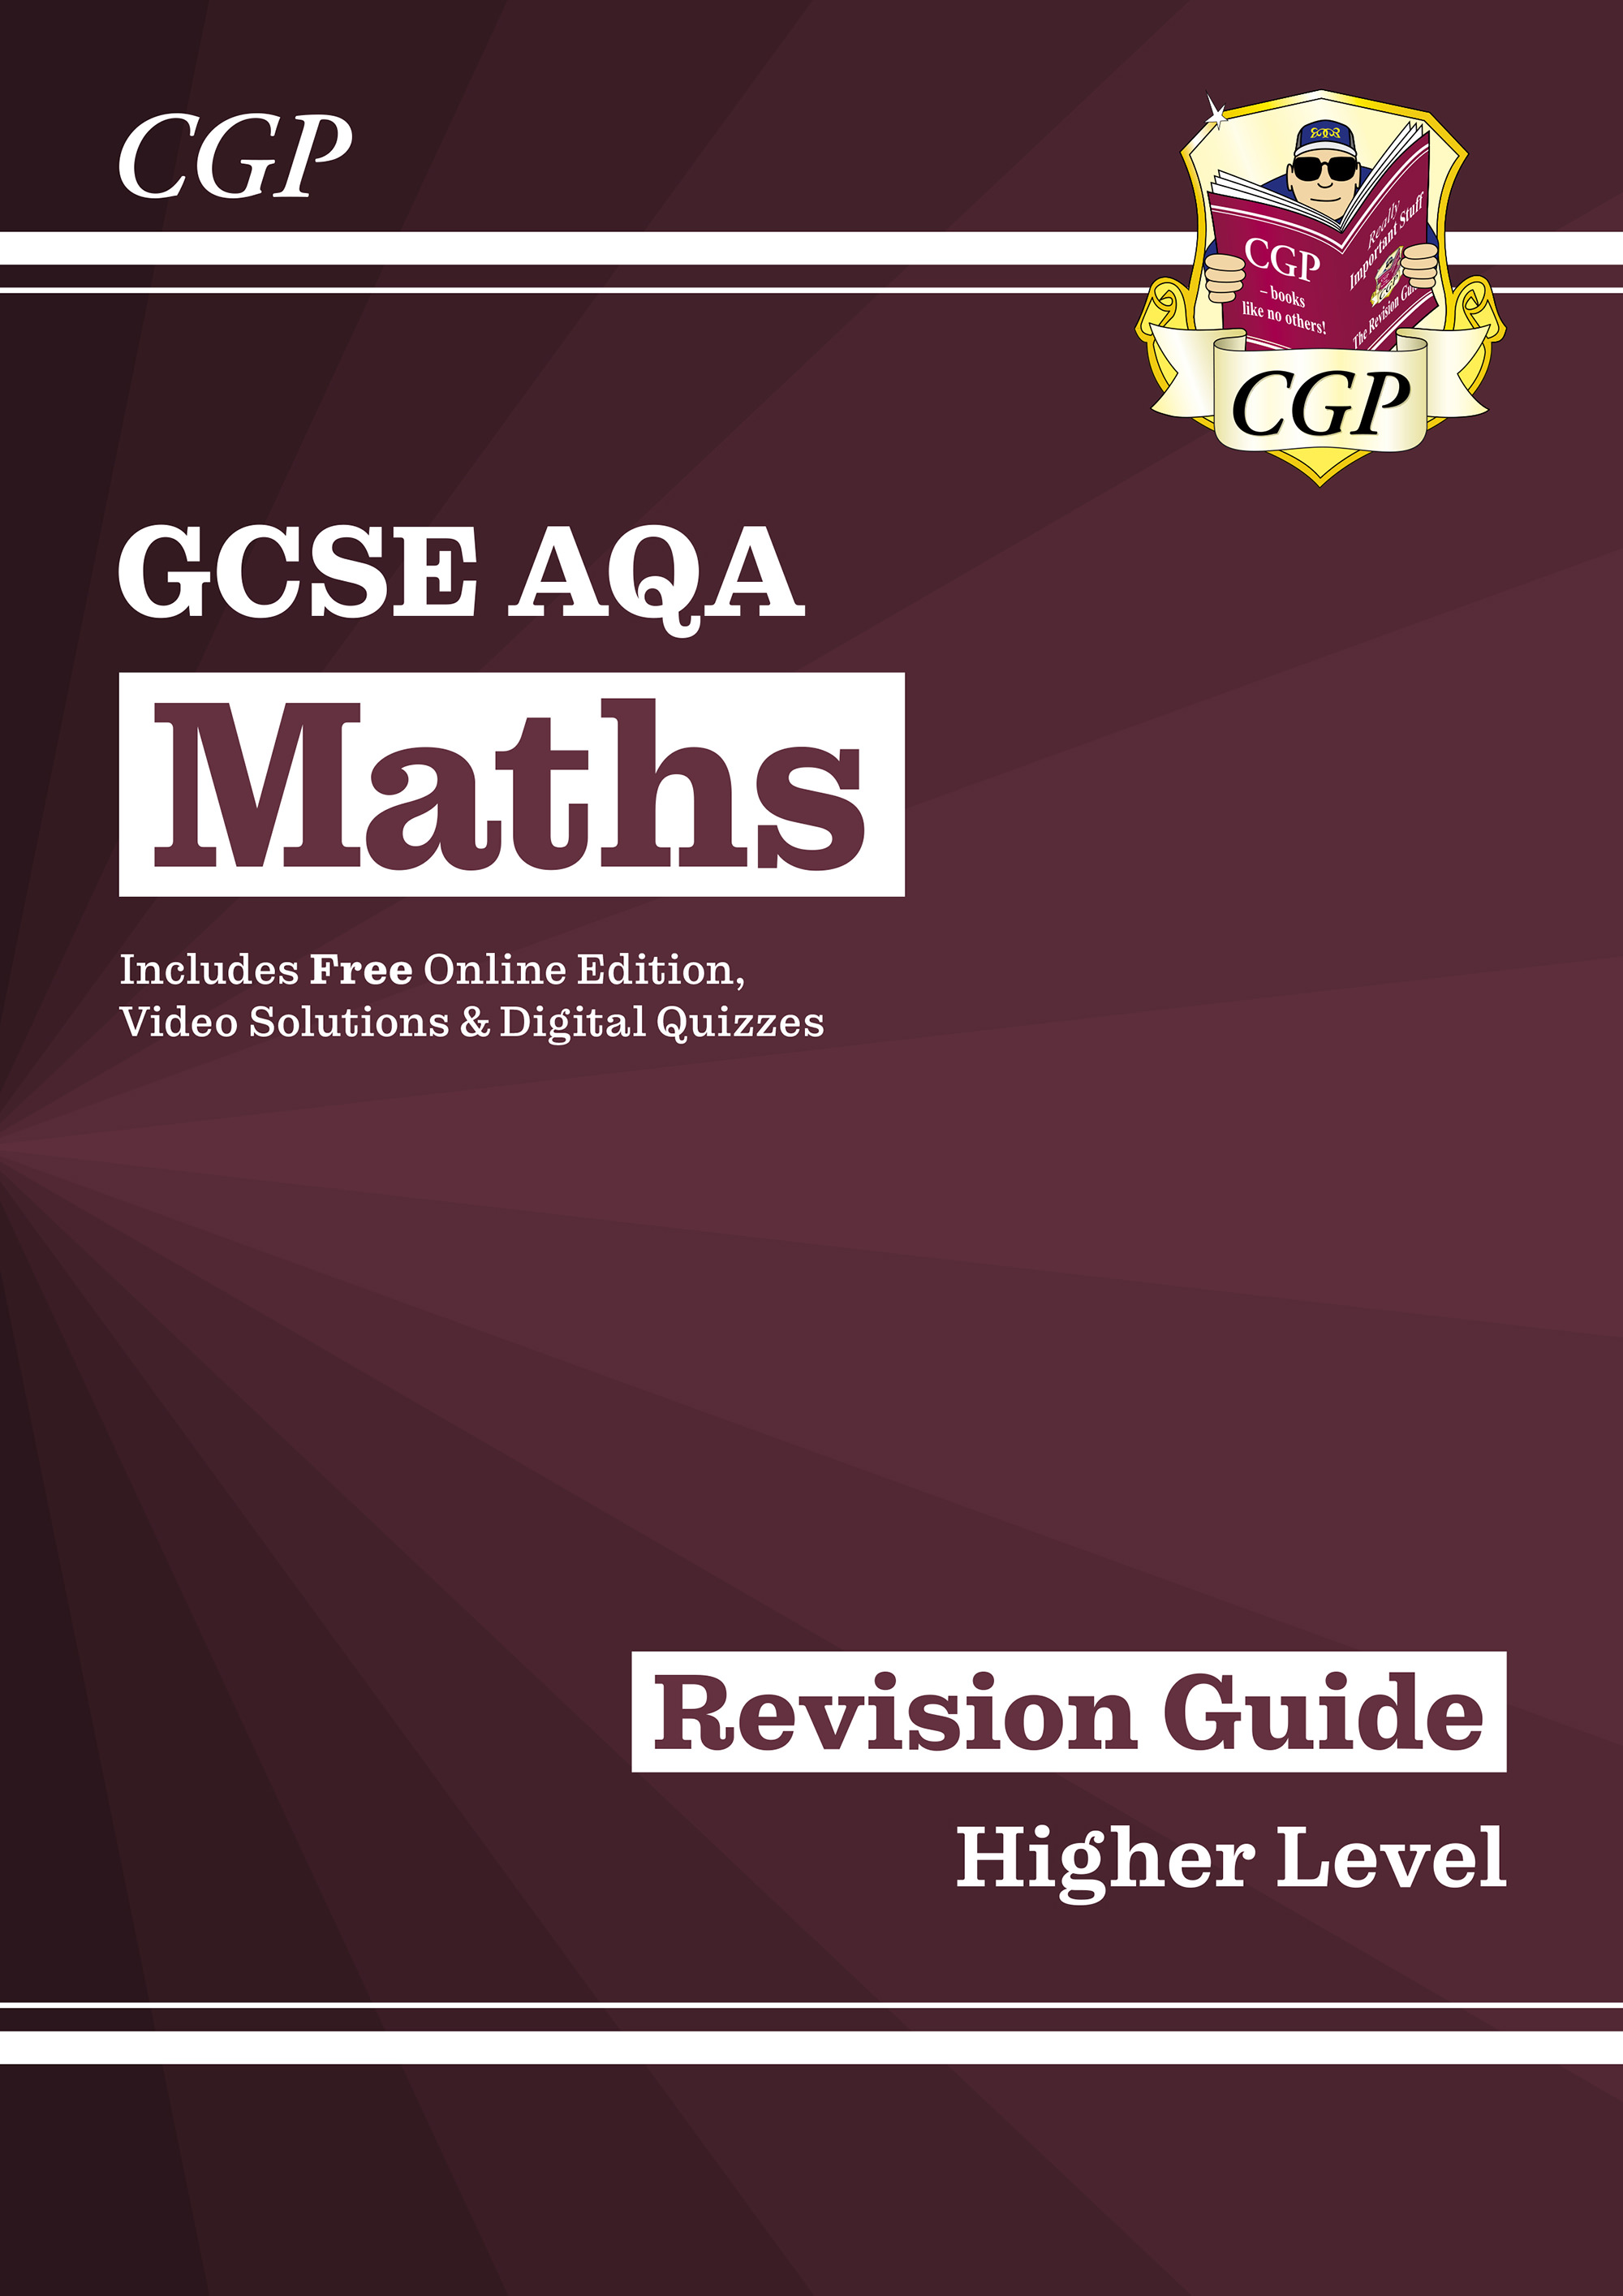 MQHR47DK - New 2021 GCSE Maths AQA Revision Guide: Higher inc Online Edition, Videos & Quizzes